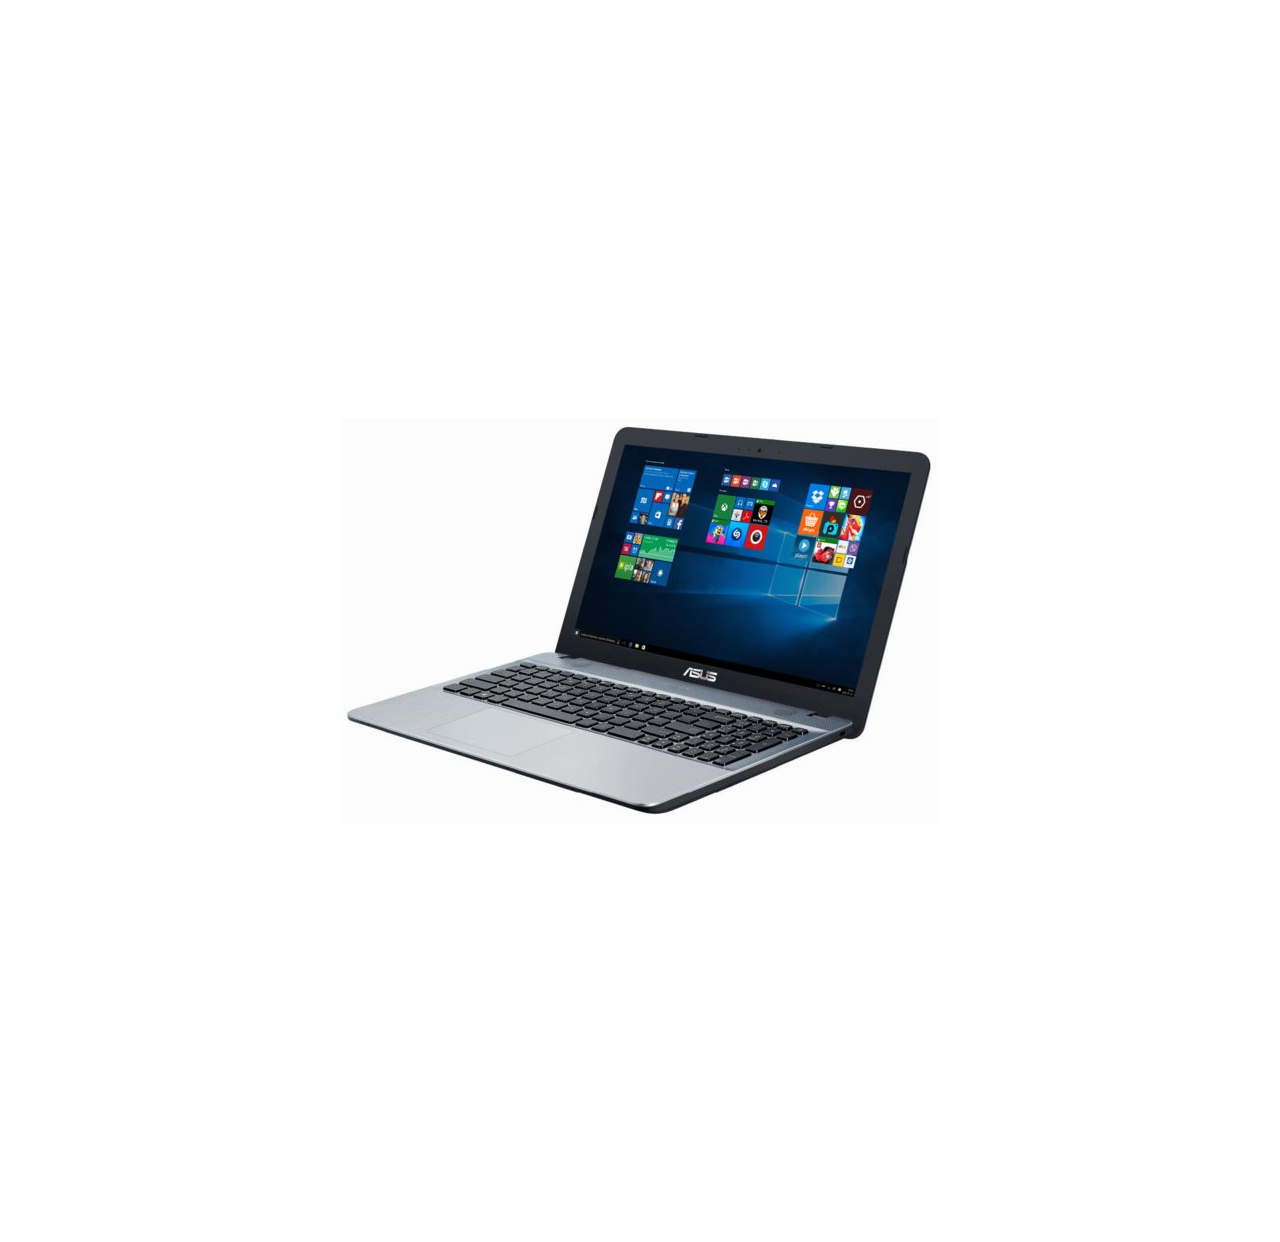 "Laptop Asus F541UJ-DM592T 15,6""FHD/i3-6006/GF 920MX 2G/4G DDR3/SSD 256 GB/Win10/Silver"